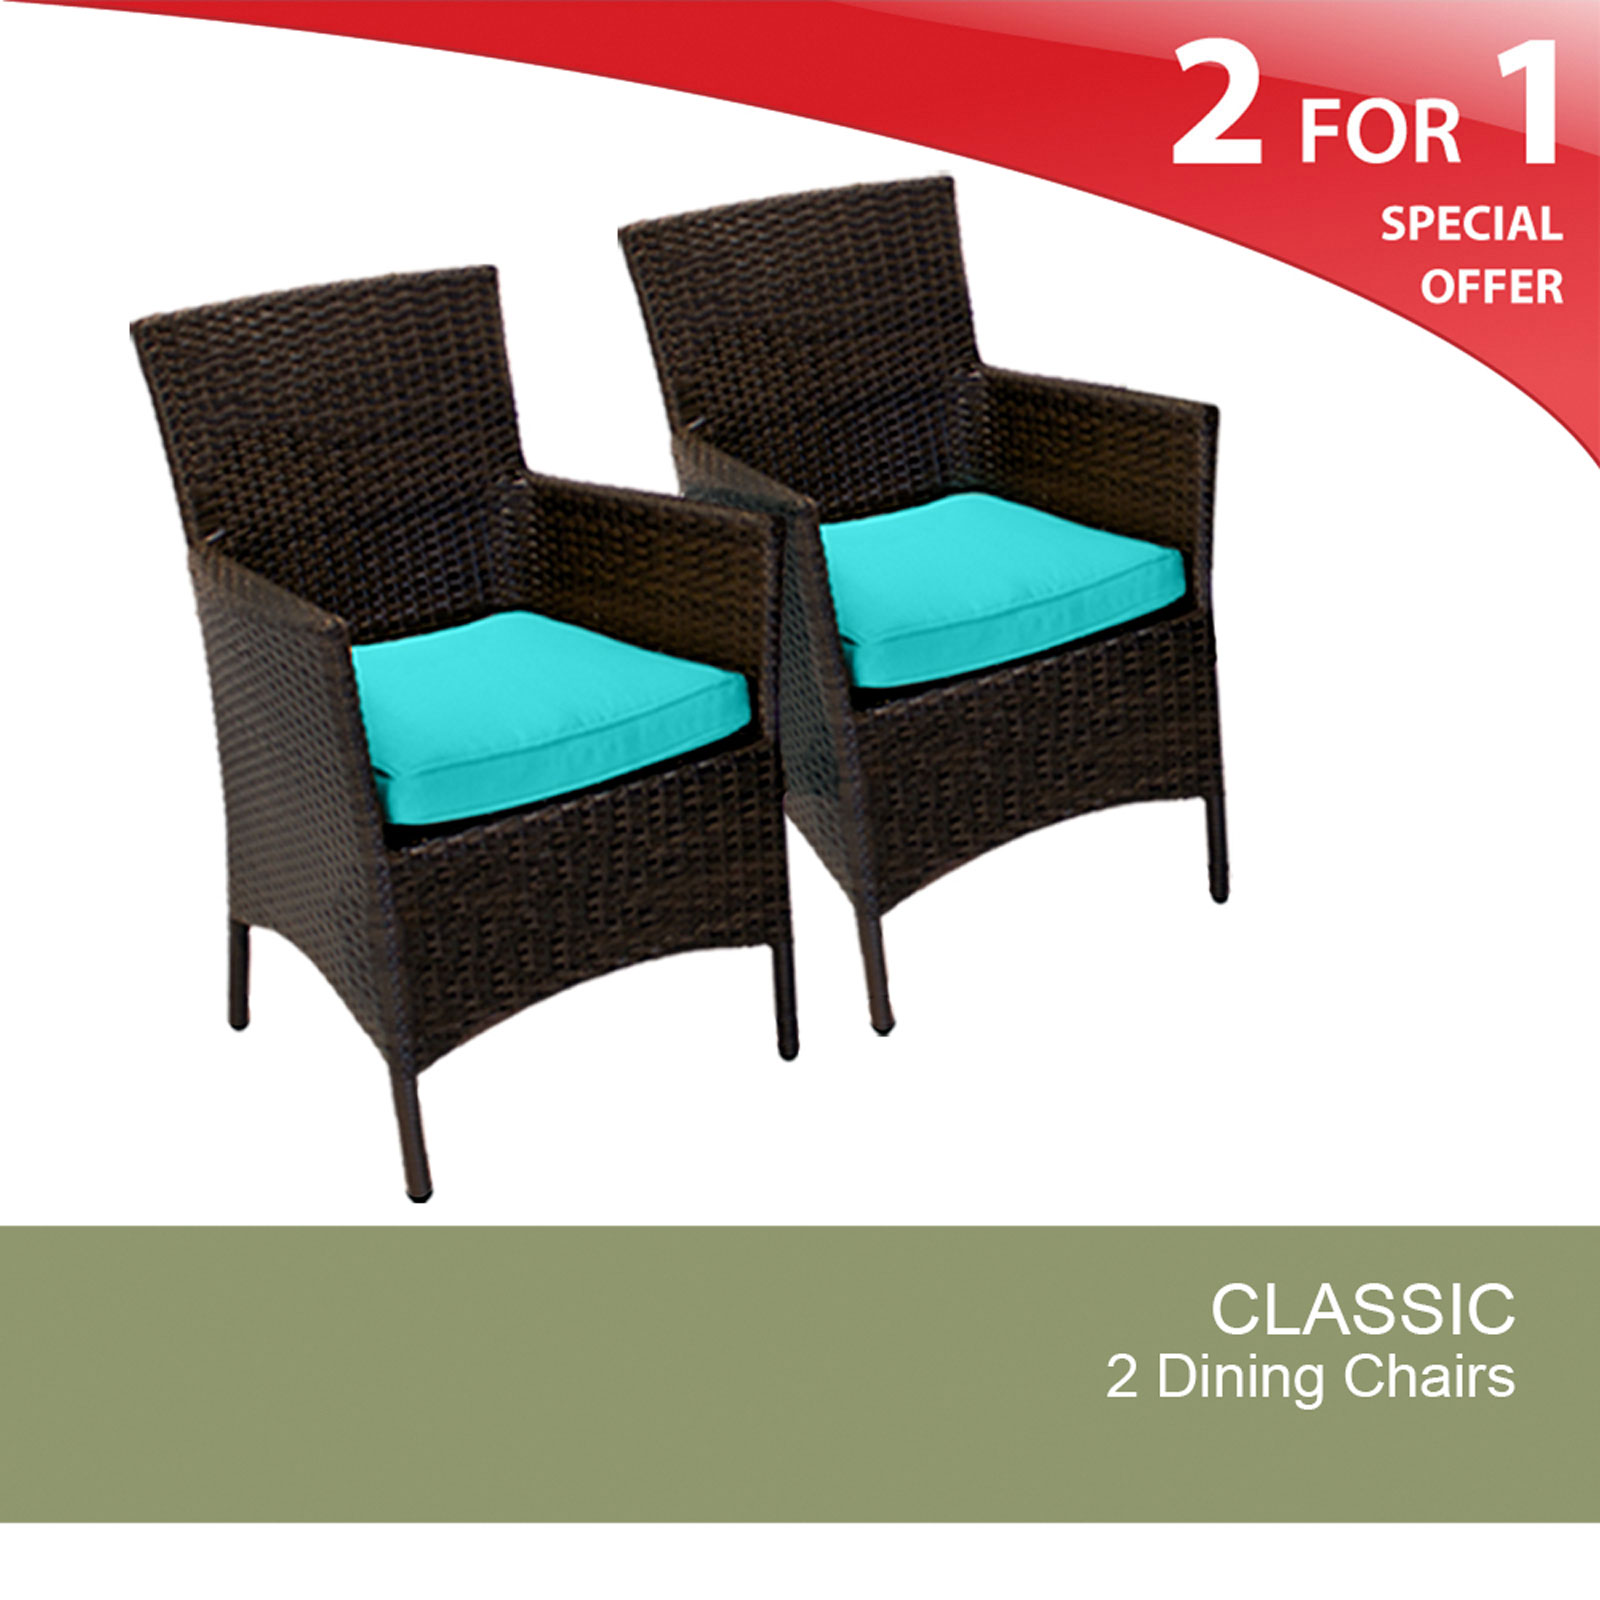 2 Classic Dining Chairs With Arms